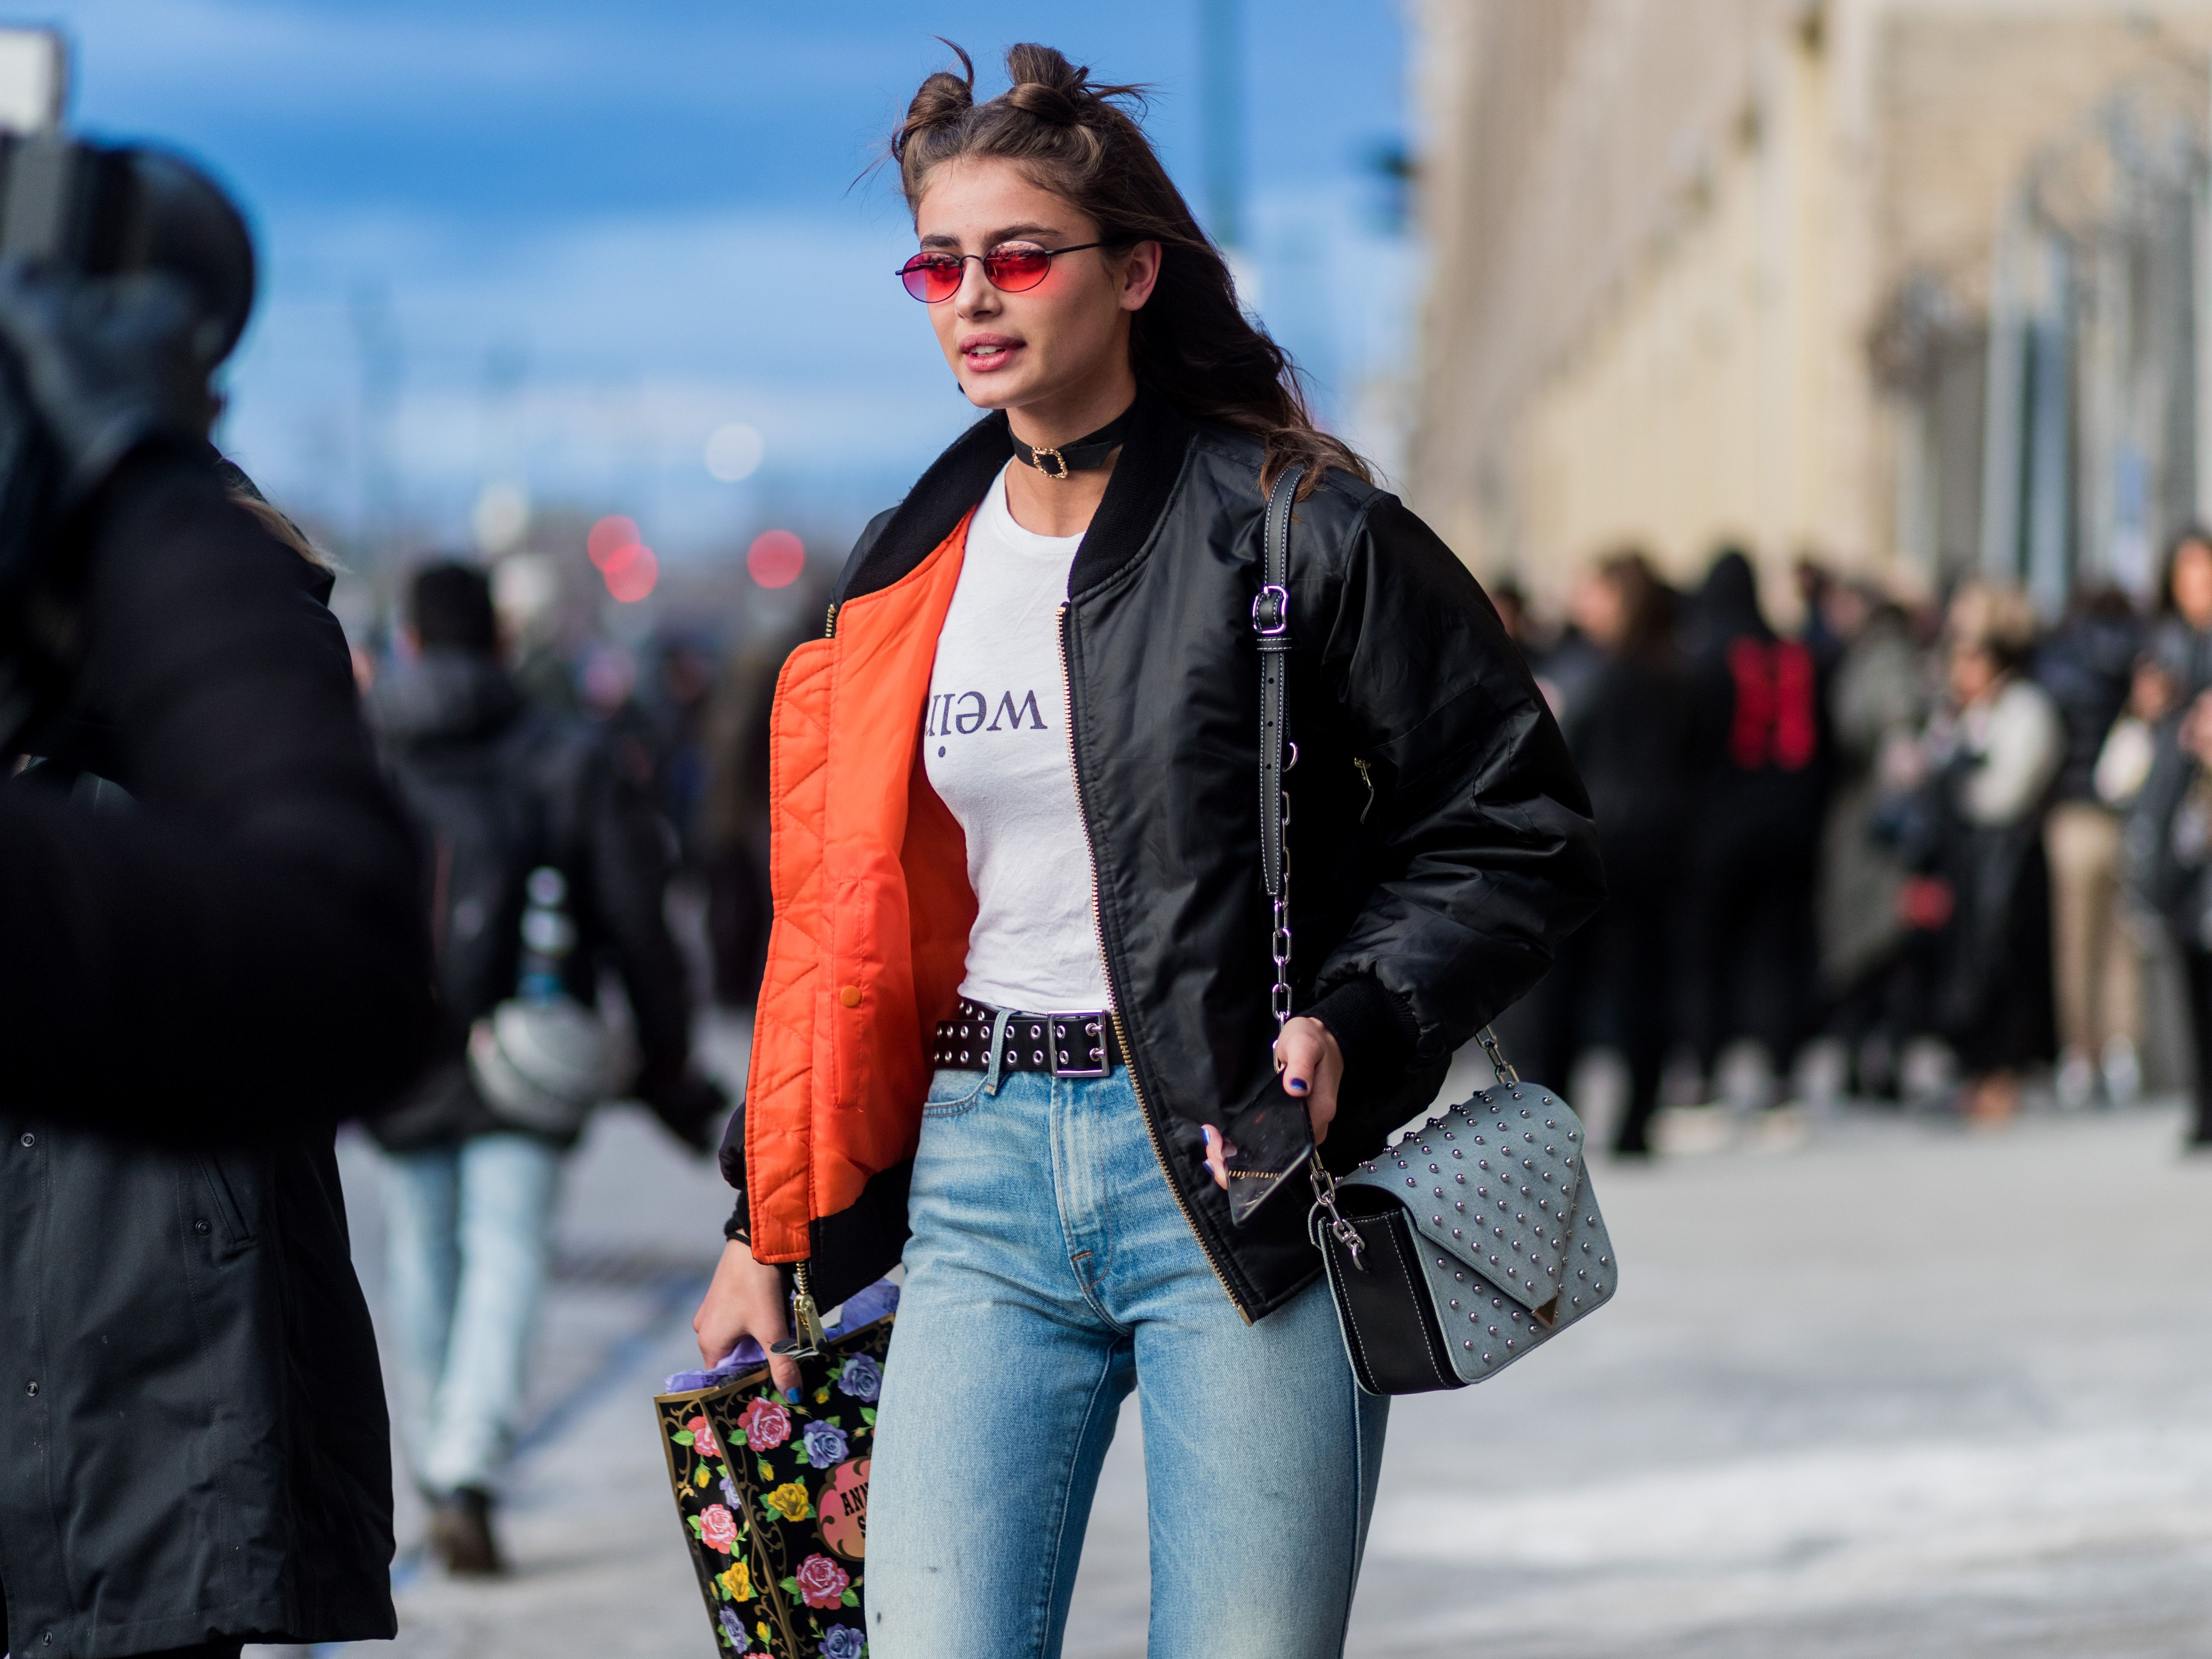 1752a26a7b18 20 Outfits That Make the '90s Look the Coolest | WhoWhatWear.com ...